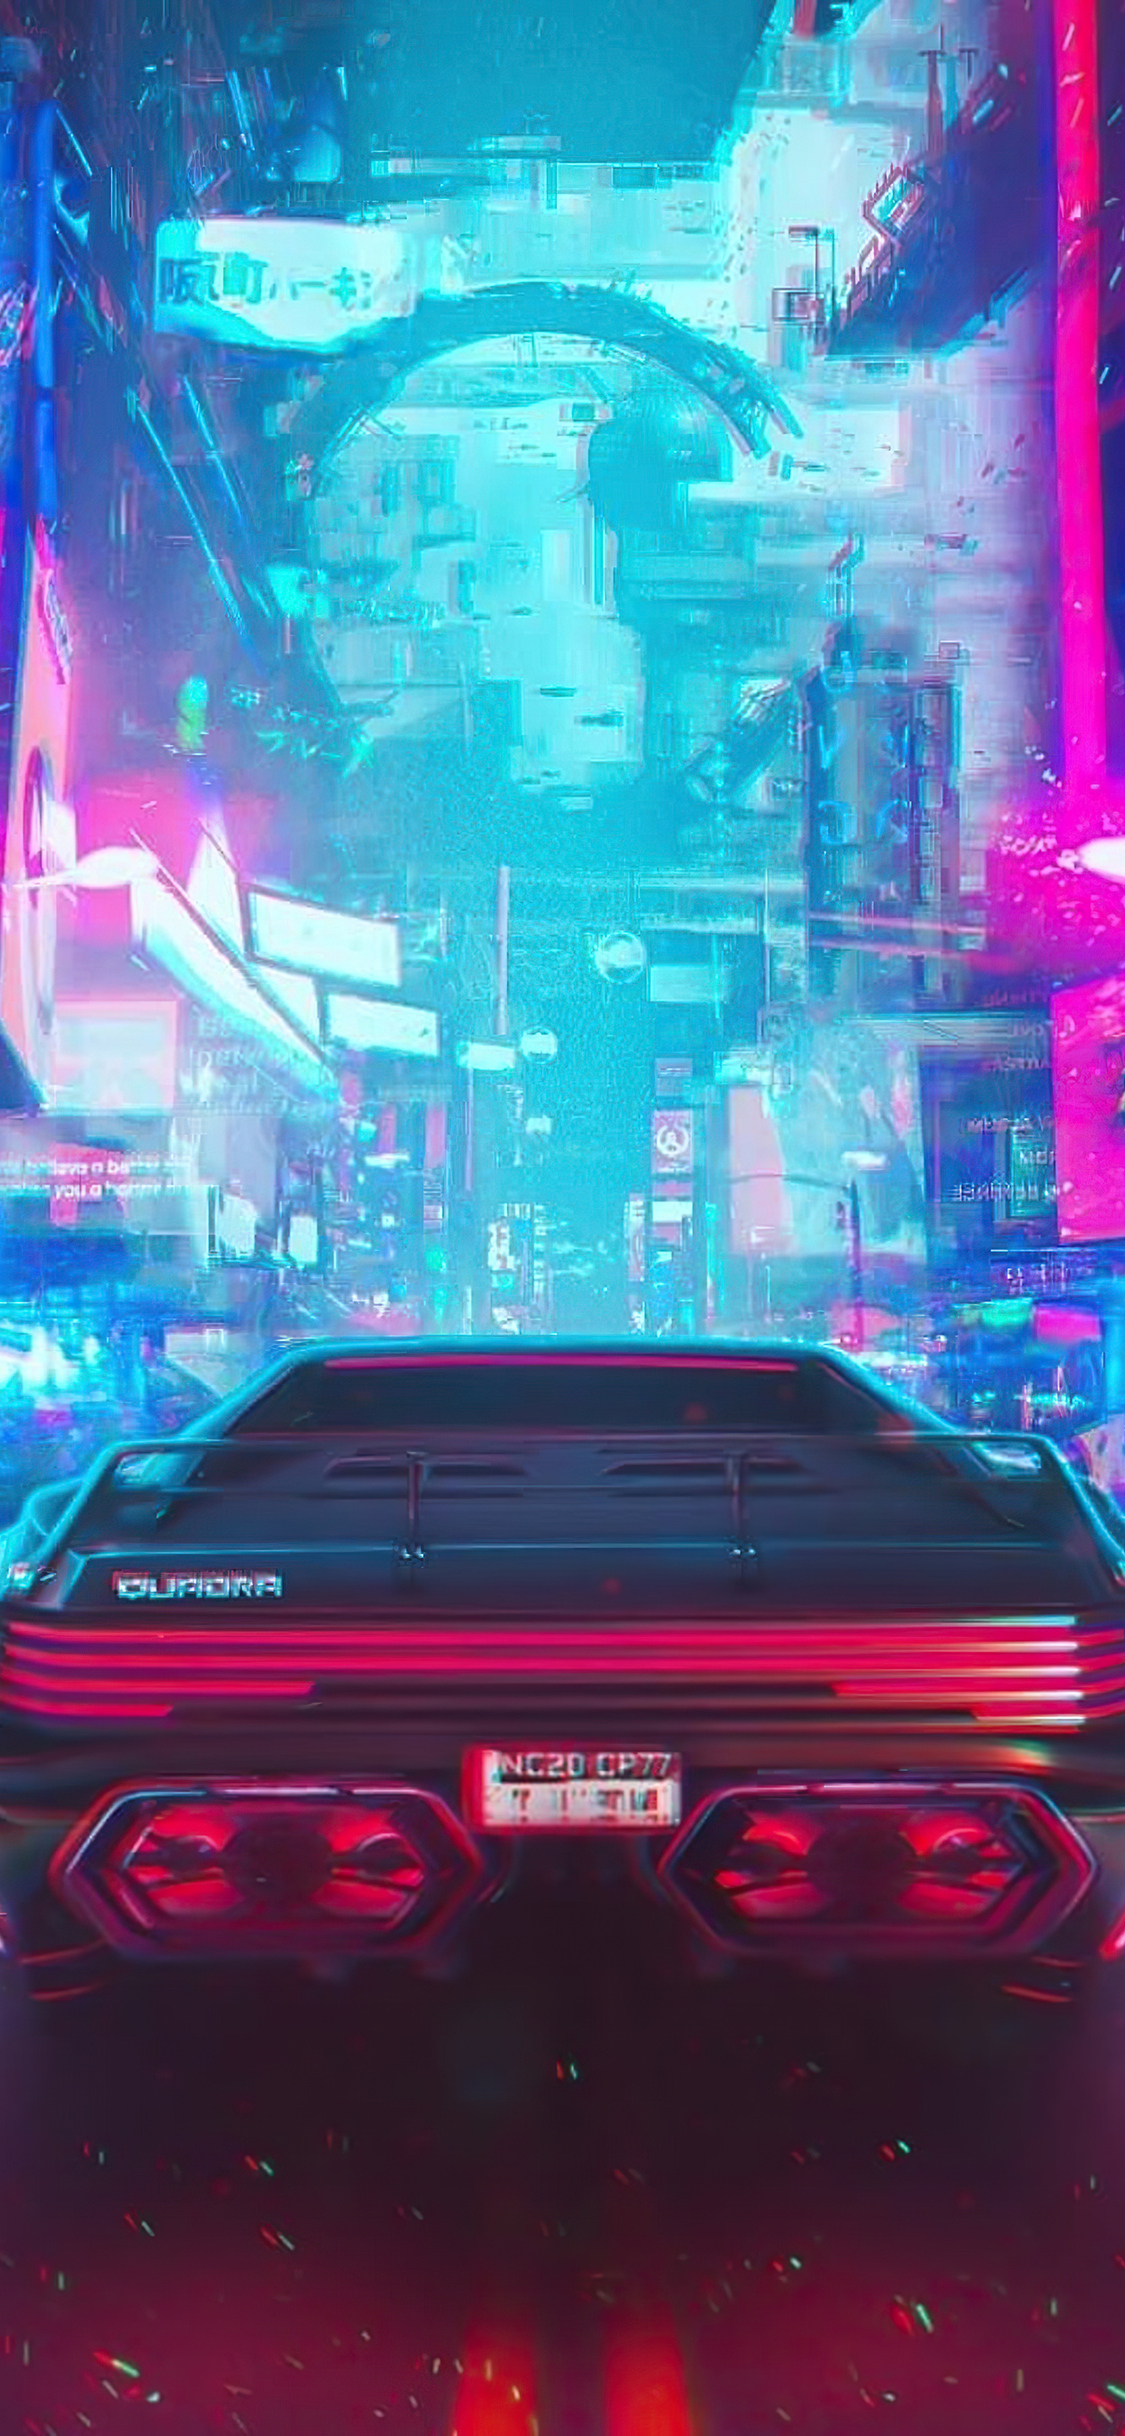 1125x2436 Retro Cyberpunk Ride 4k Iphone Xs Iphone 10 Iphone X Hd 4k Wallpapers Images Backgrounds Photos And Pictures